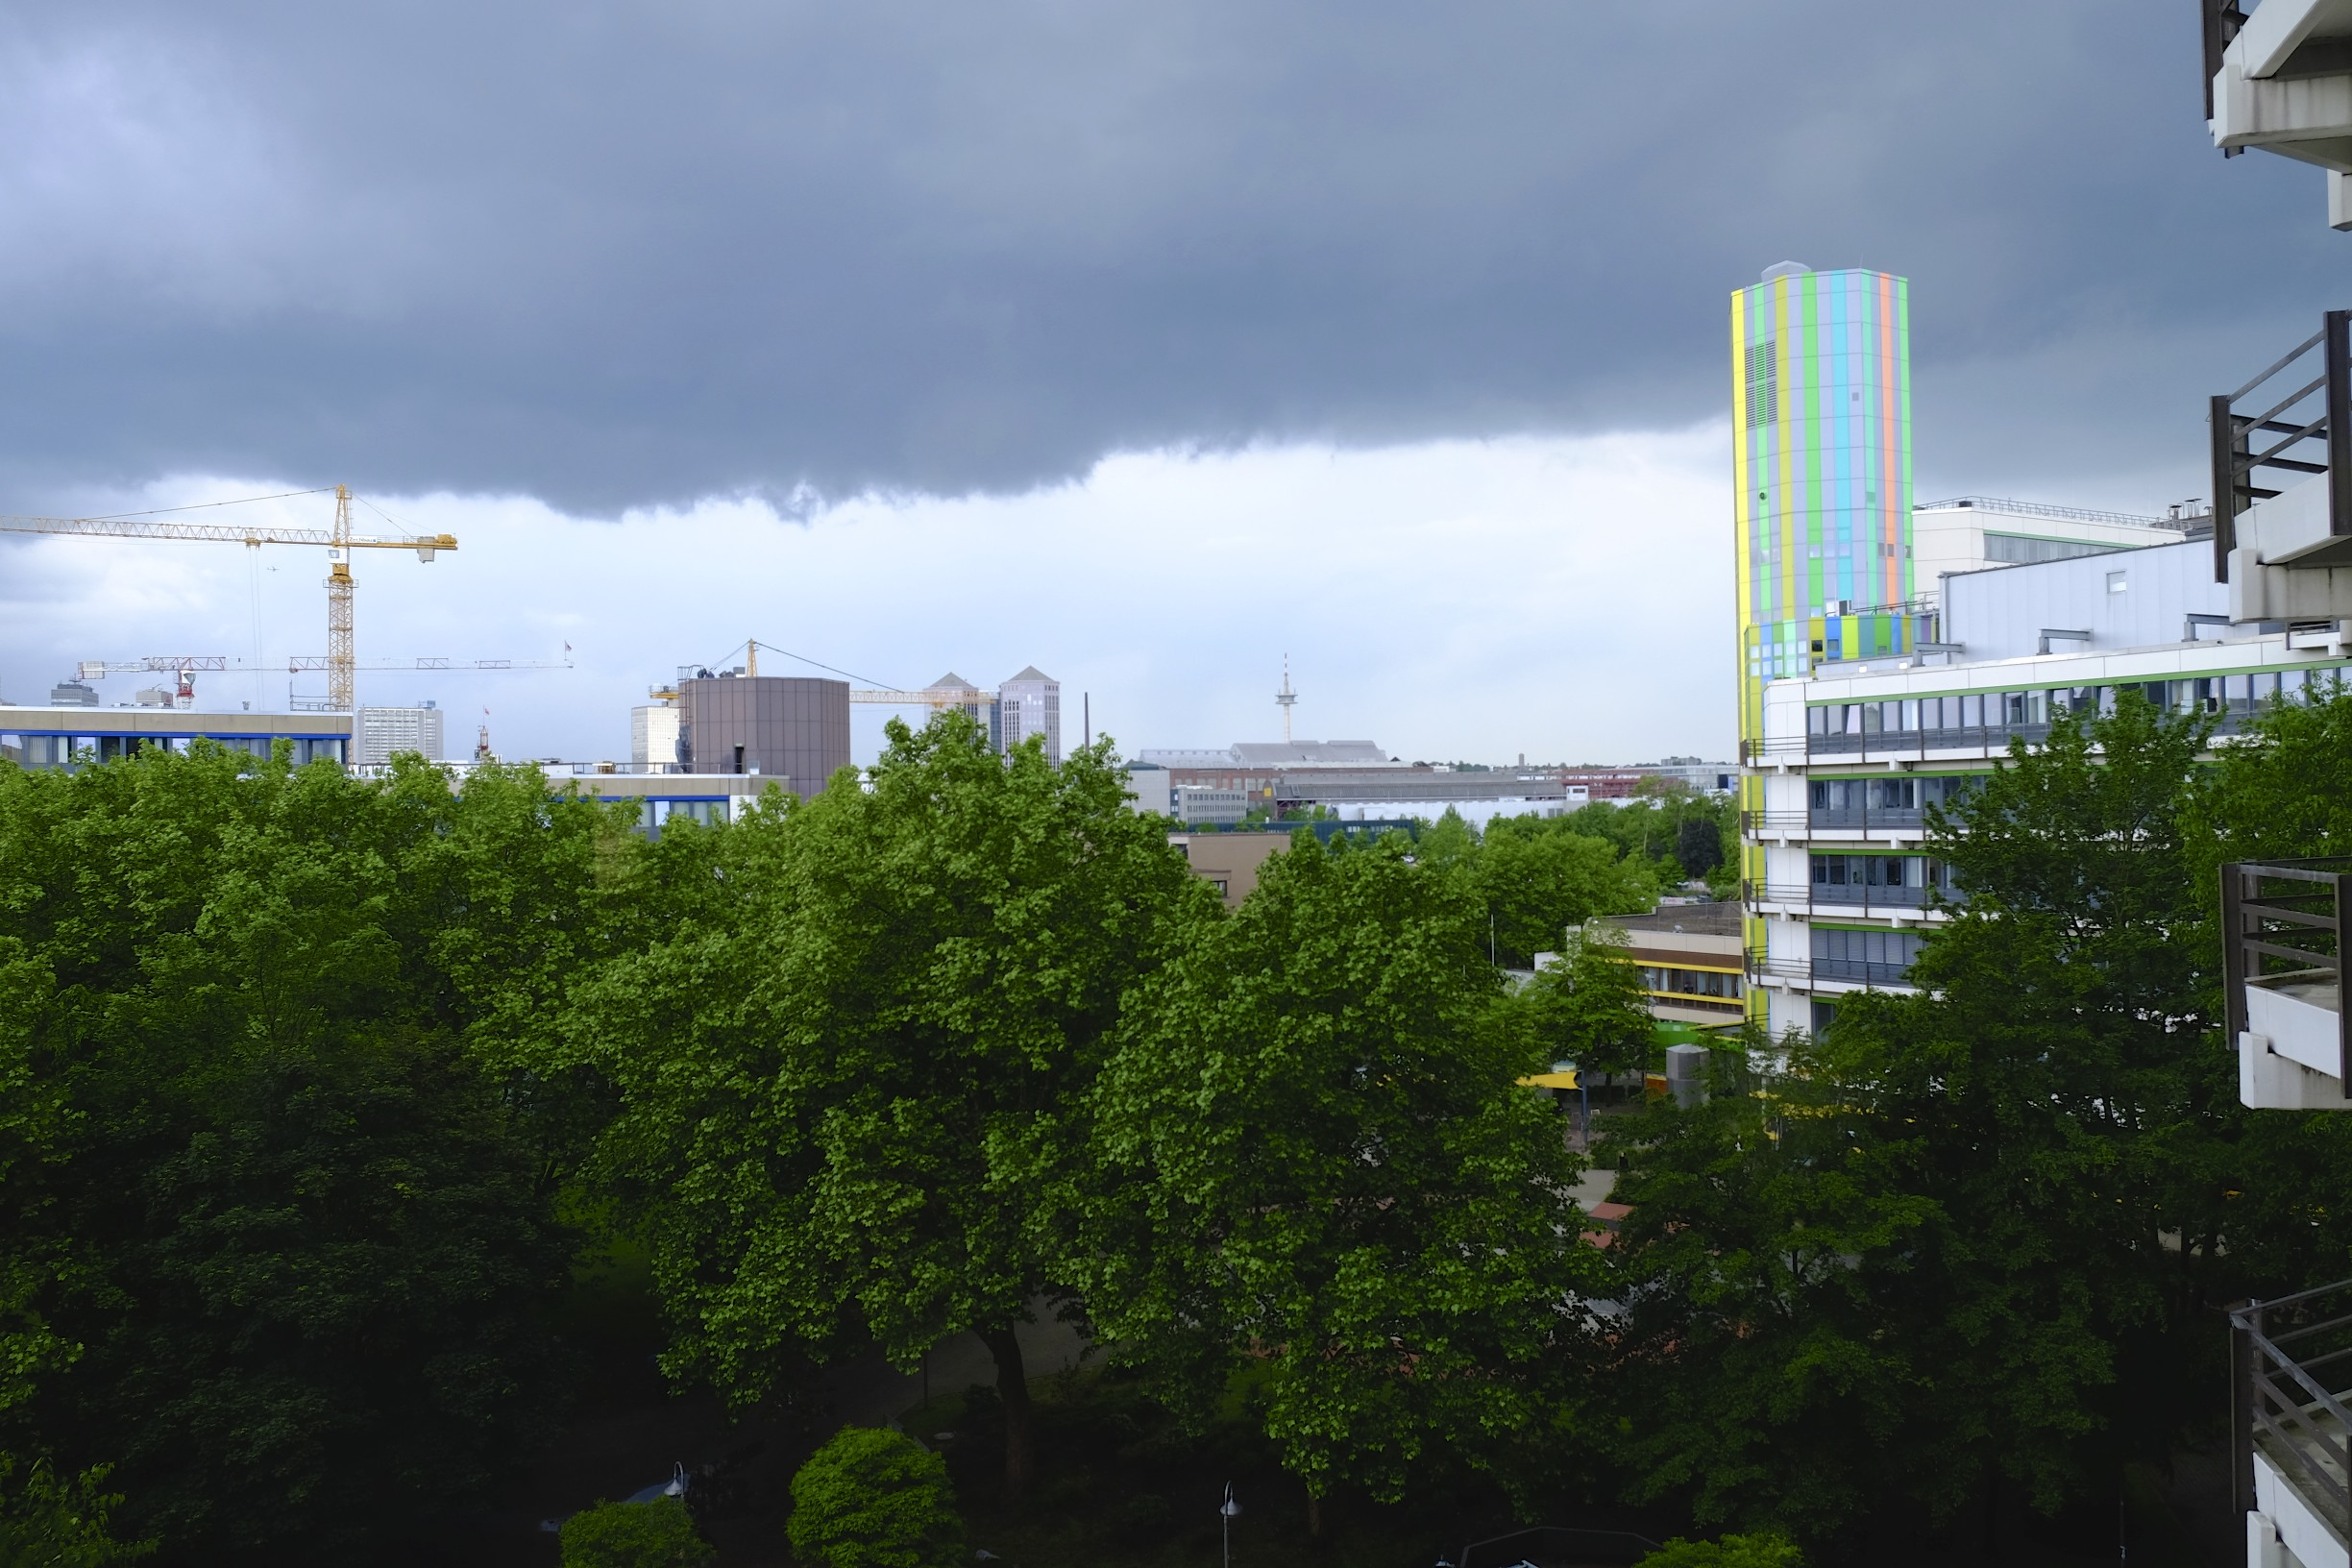 View from Entrance S05 over the Essen University Campus.